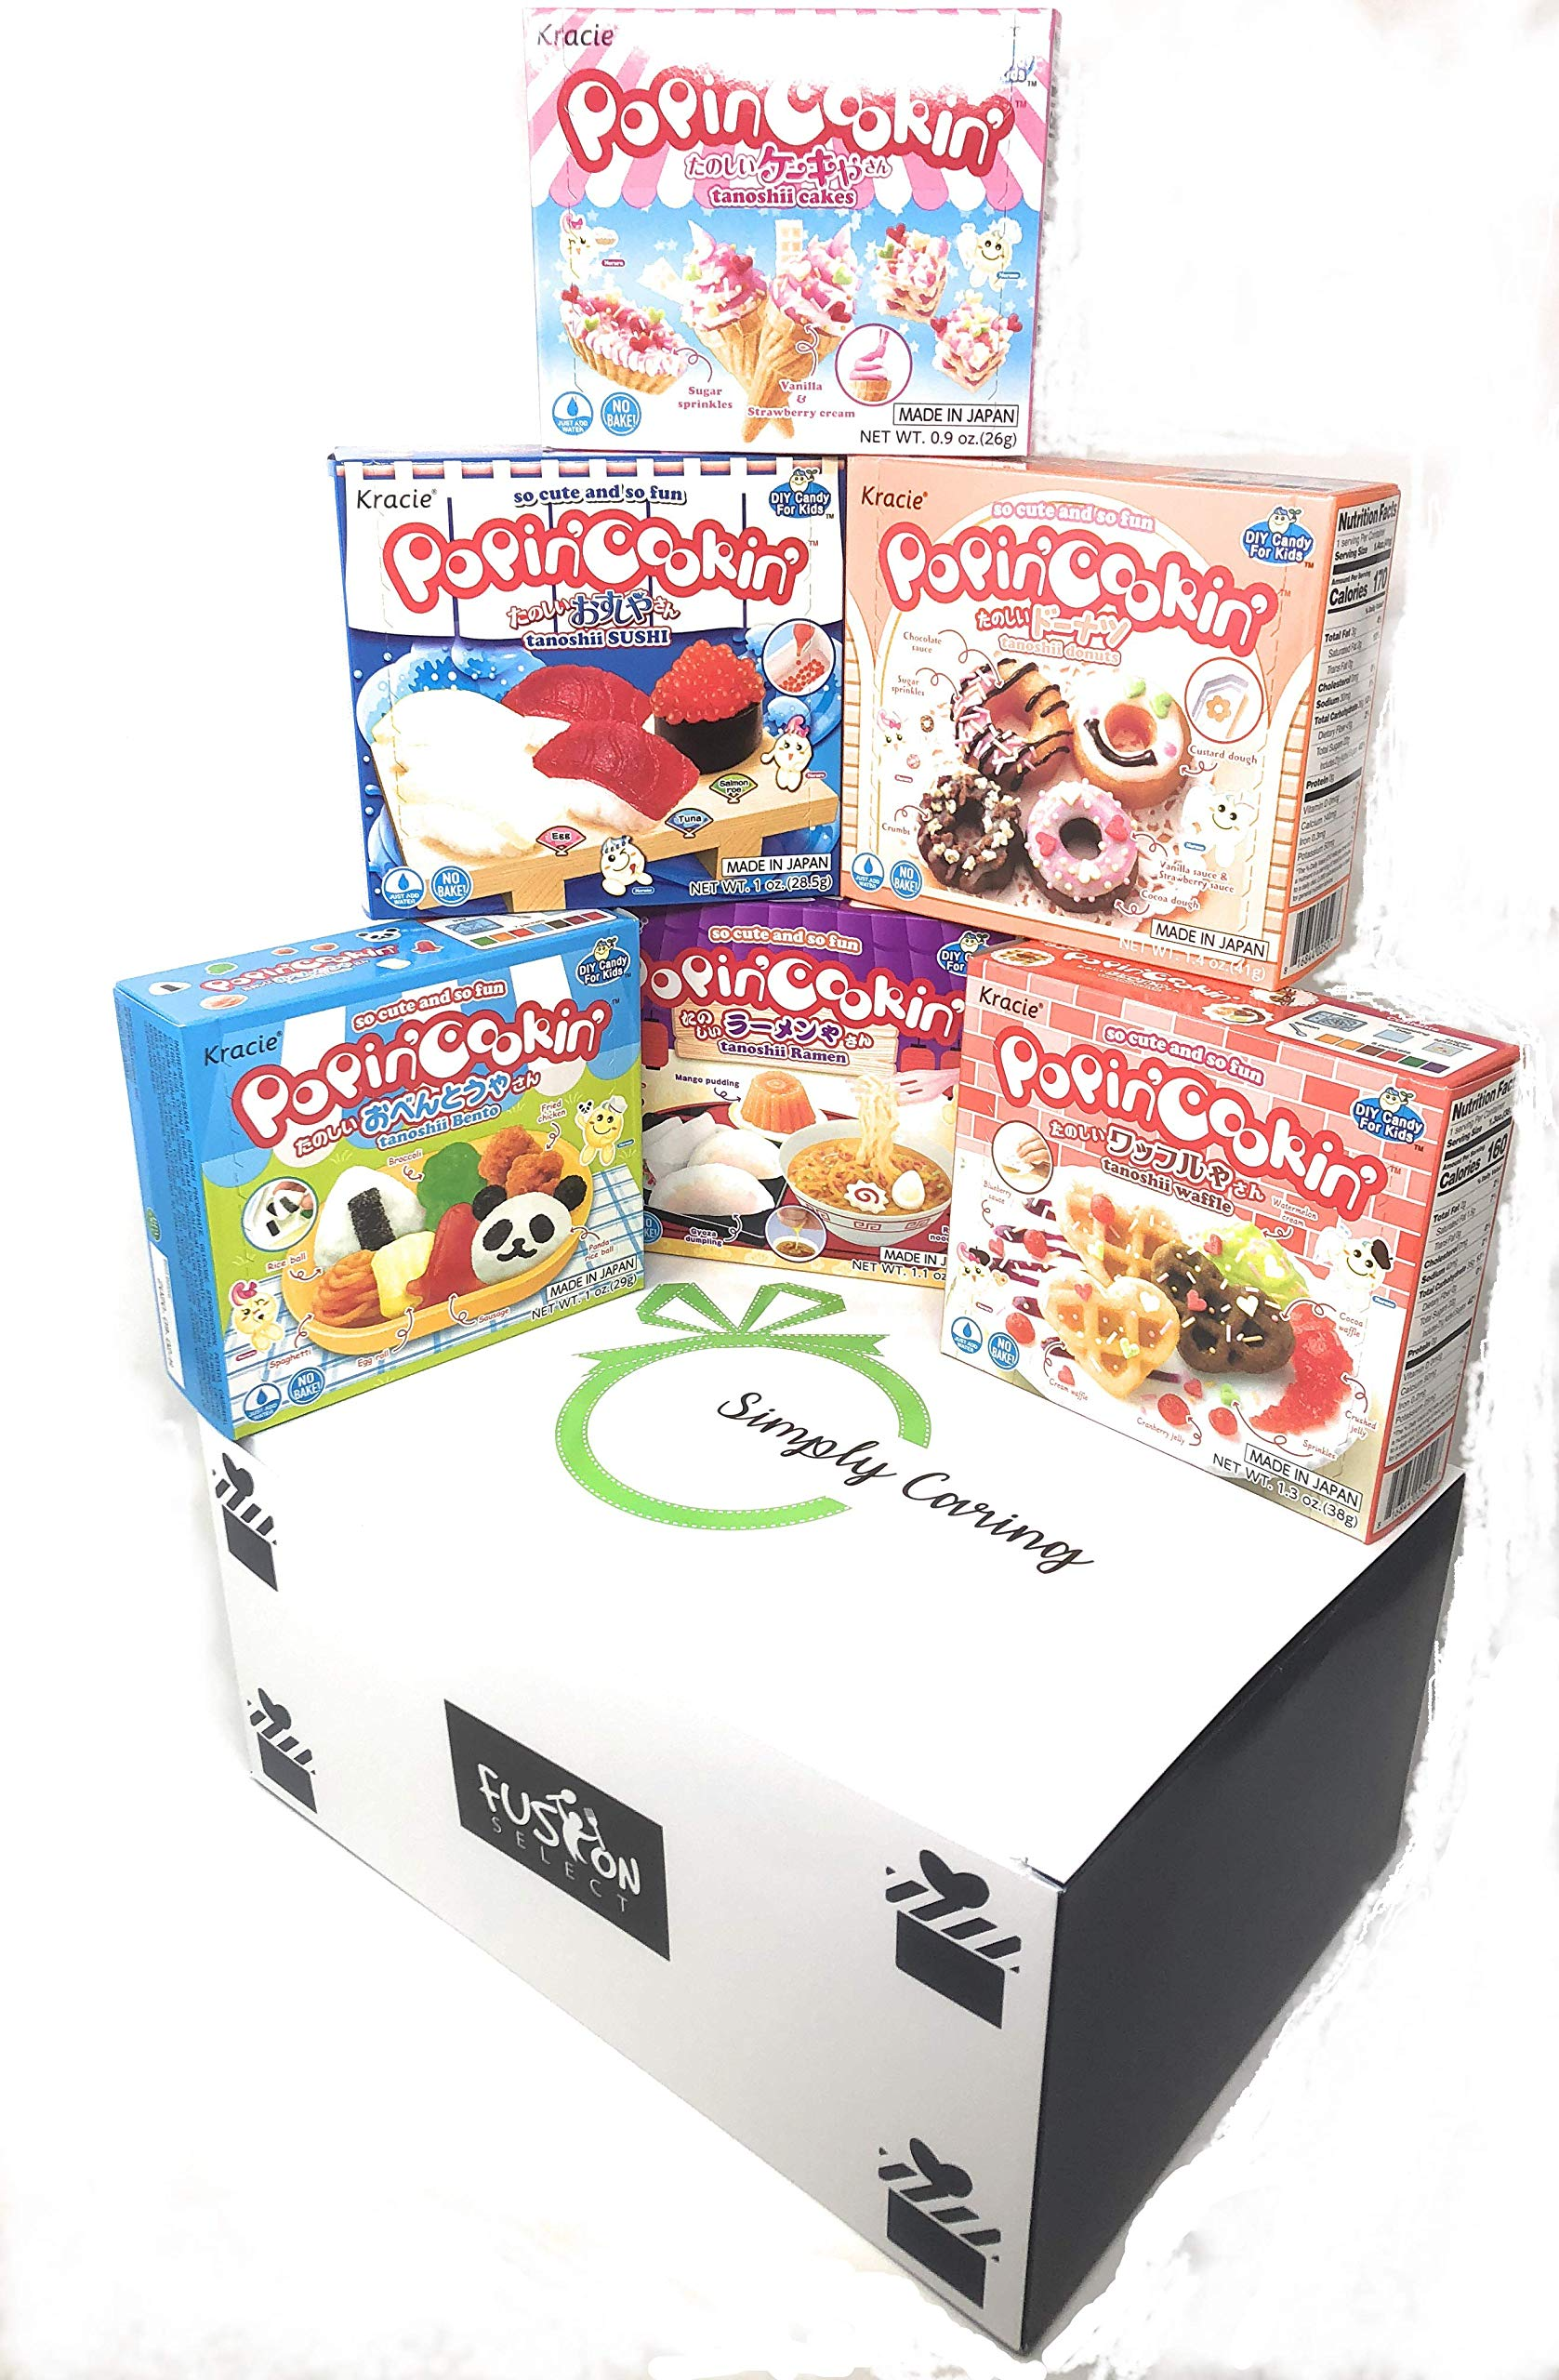 6 Boxes Bundle Kracie Popin' Cookin' DIY Gummy Candy Making Kit Tanoshii Cakes, Sushi and Donuts,Tanoshii Bento, Ramen and Waffle in Fusion Select Gift Box by Fusion Select